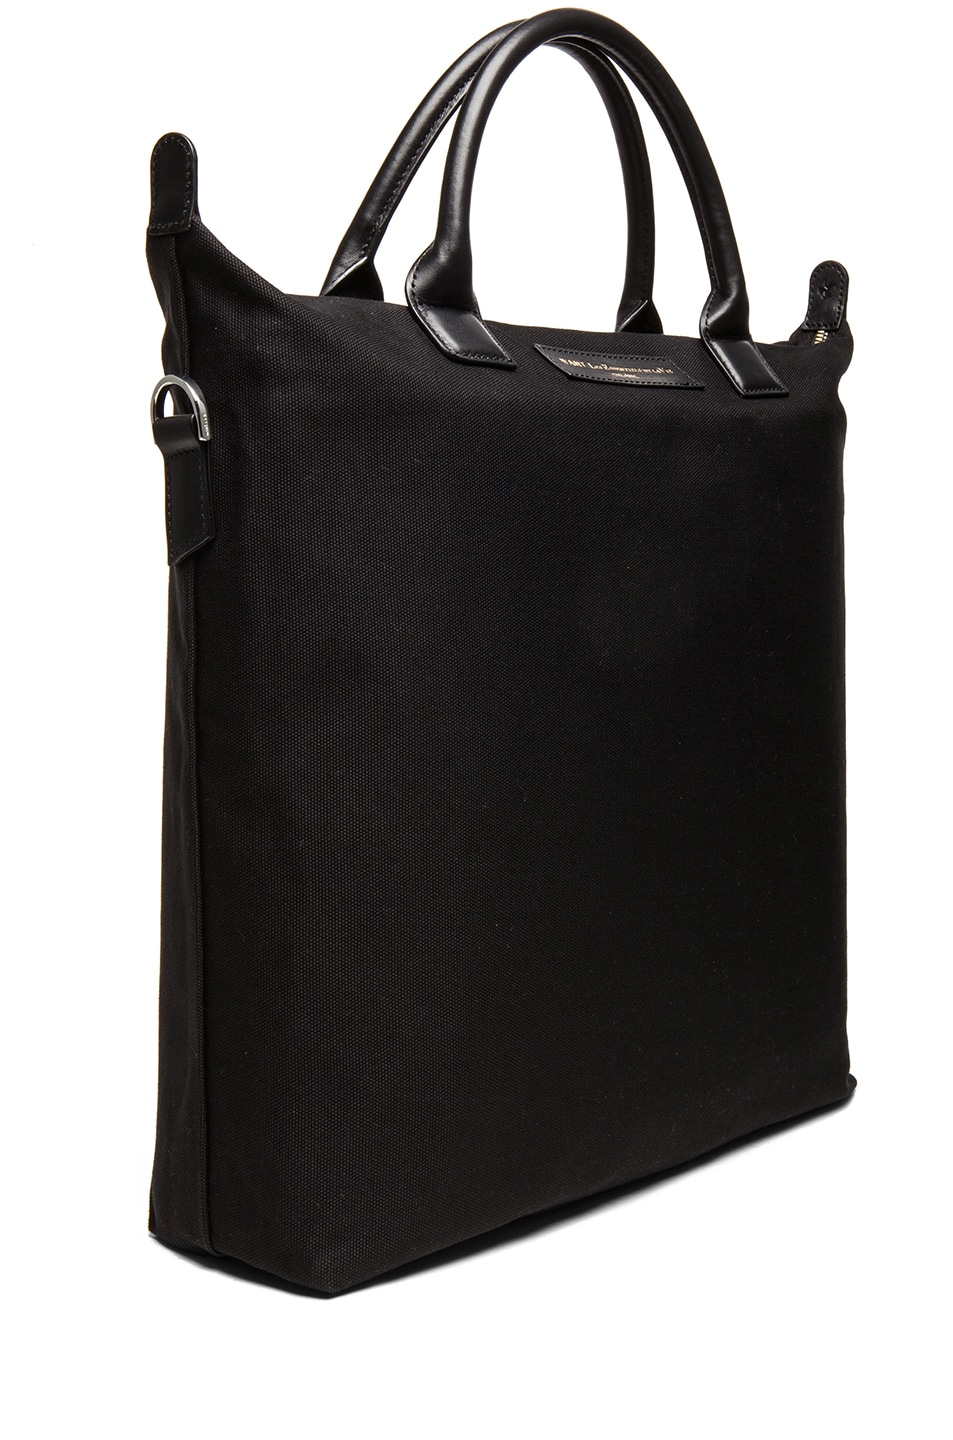 Image 3 of Want Les Essentiels De La Vie O'Hare Cotton Shopper Tote in Black